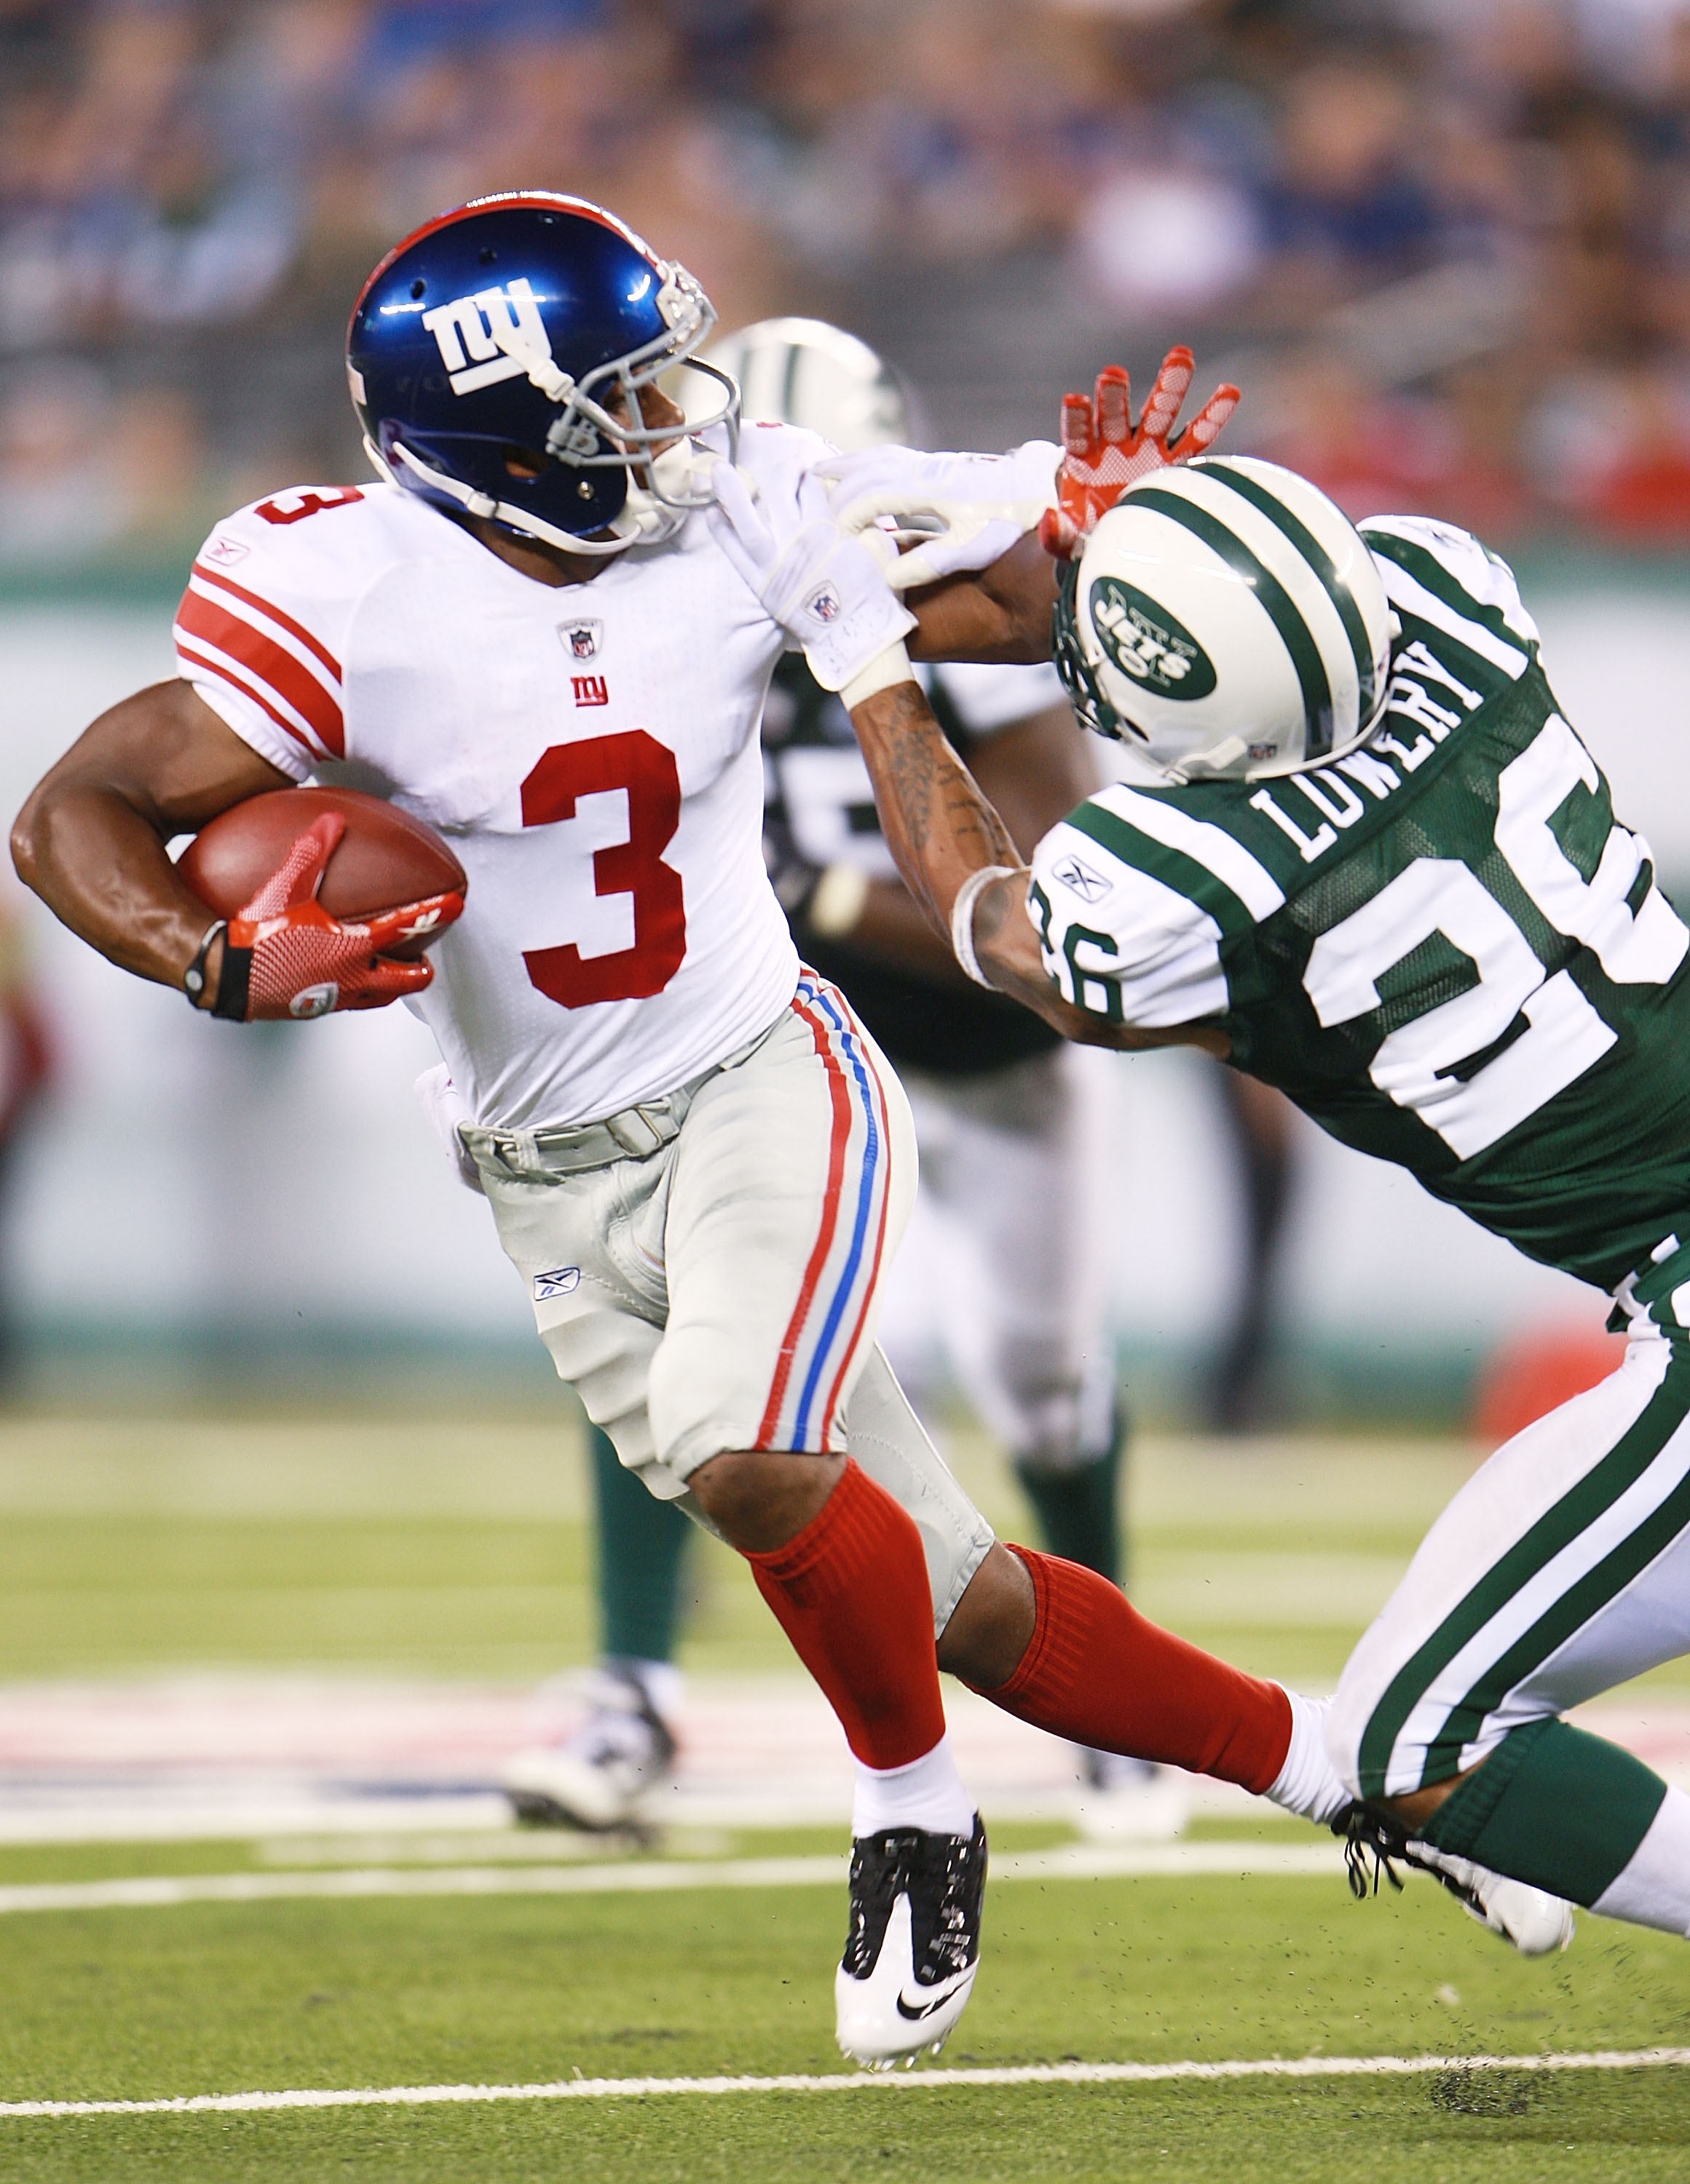 EAST RUTHERFORD, NJ - AUGUST 16:  Victor Cruz #3 of the New York Giants breaks a tackle from Dwight Lowery #26 of the New York Jets during the preseason game at New Meadowlands Stadium on August 16, 2010 in East Rutherford, New Jersey. The  Giants won 31